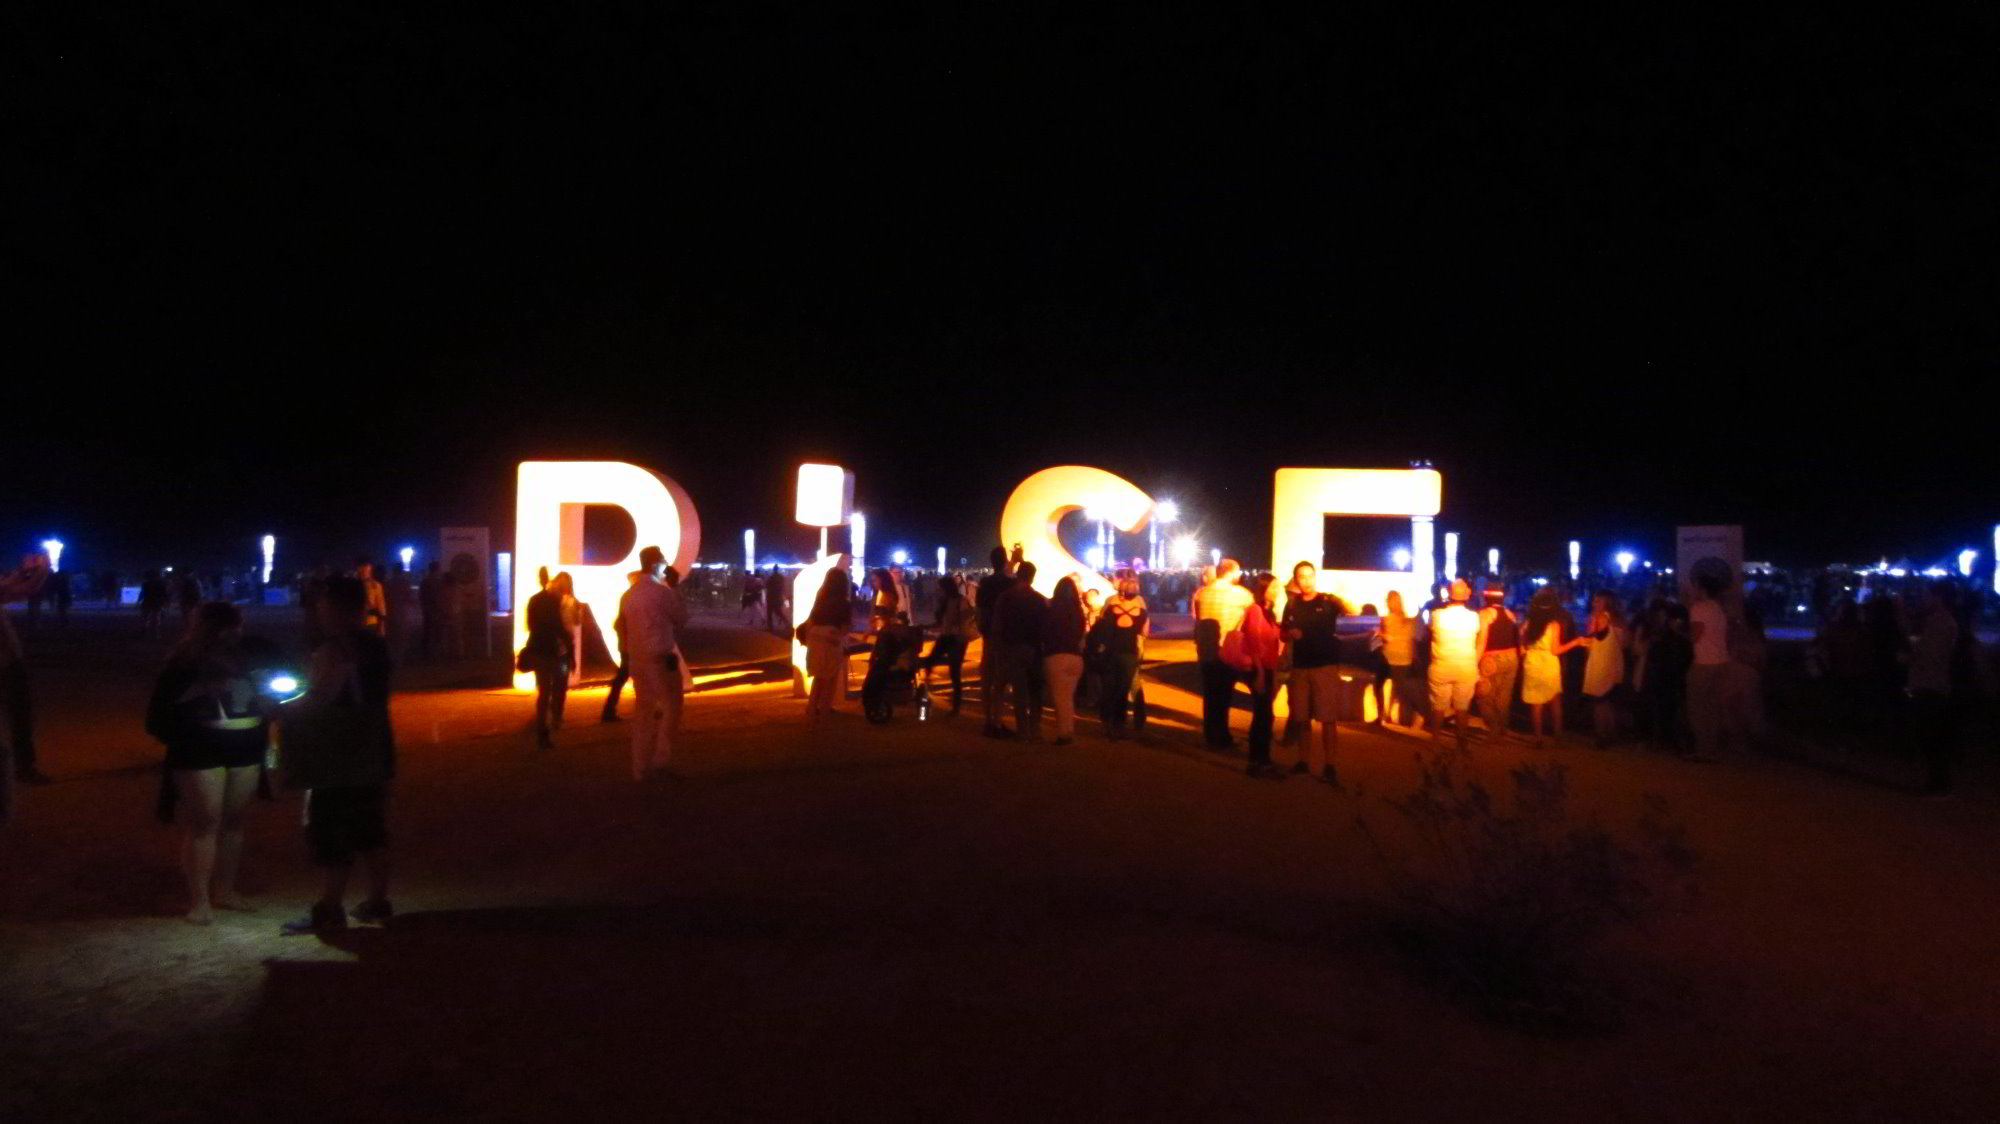 RiSE sign at entrance of 2015 Rise Festival at the Moapa River Reservation near Las Vegas